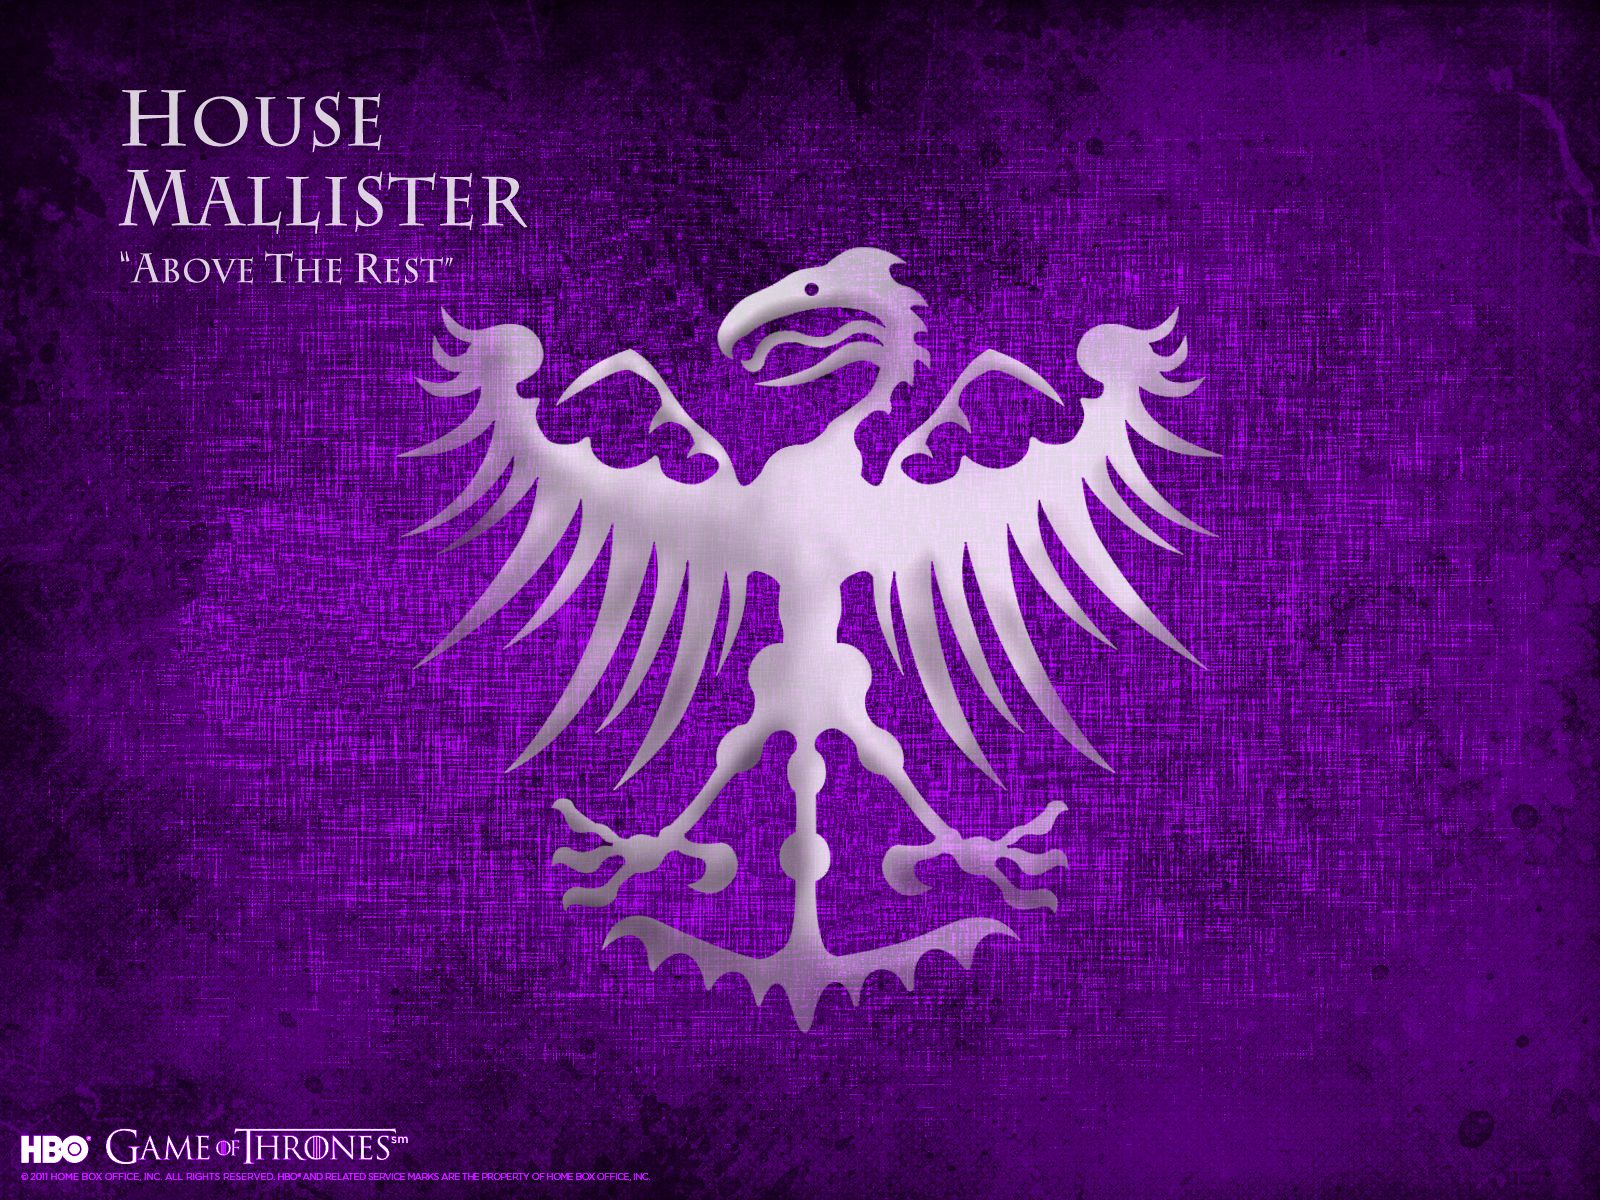 Category house mallister game of thrones wiki fandom - Game Of Thrones Wallpaper House Mallister